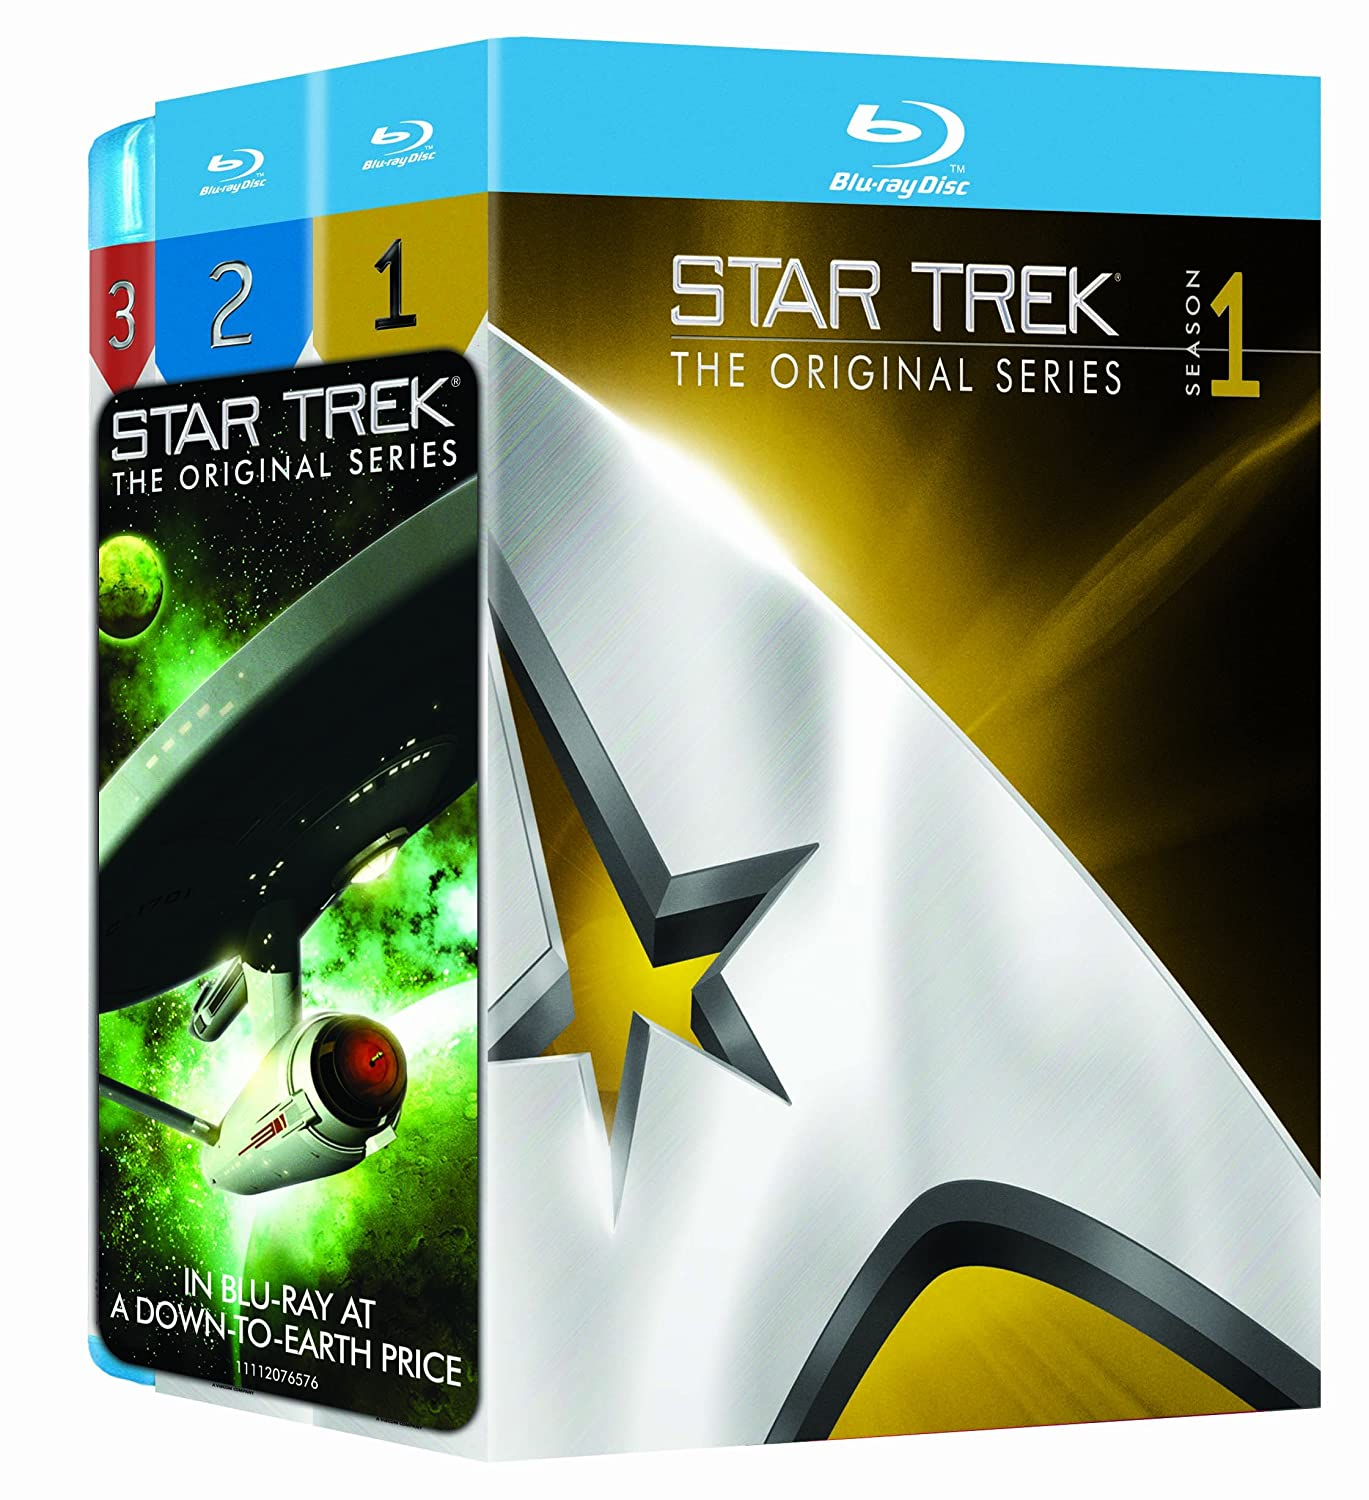 Save up to 66% on Star Trek Collections on DVD and Blu-ray